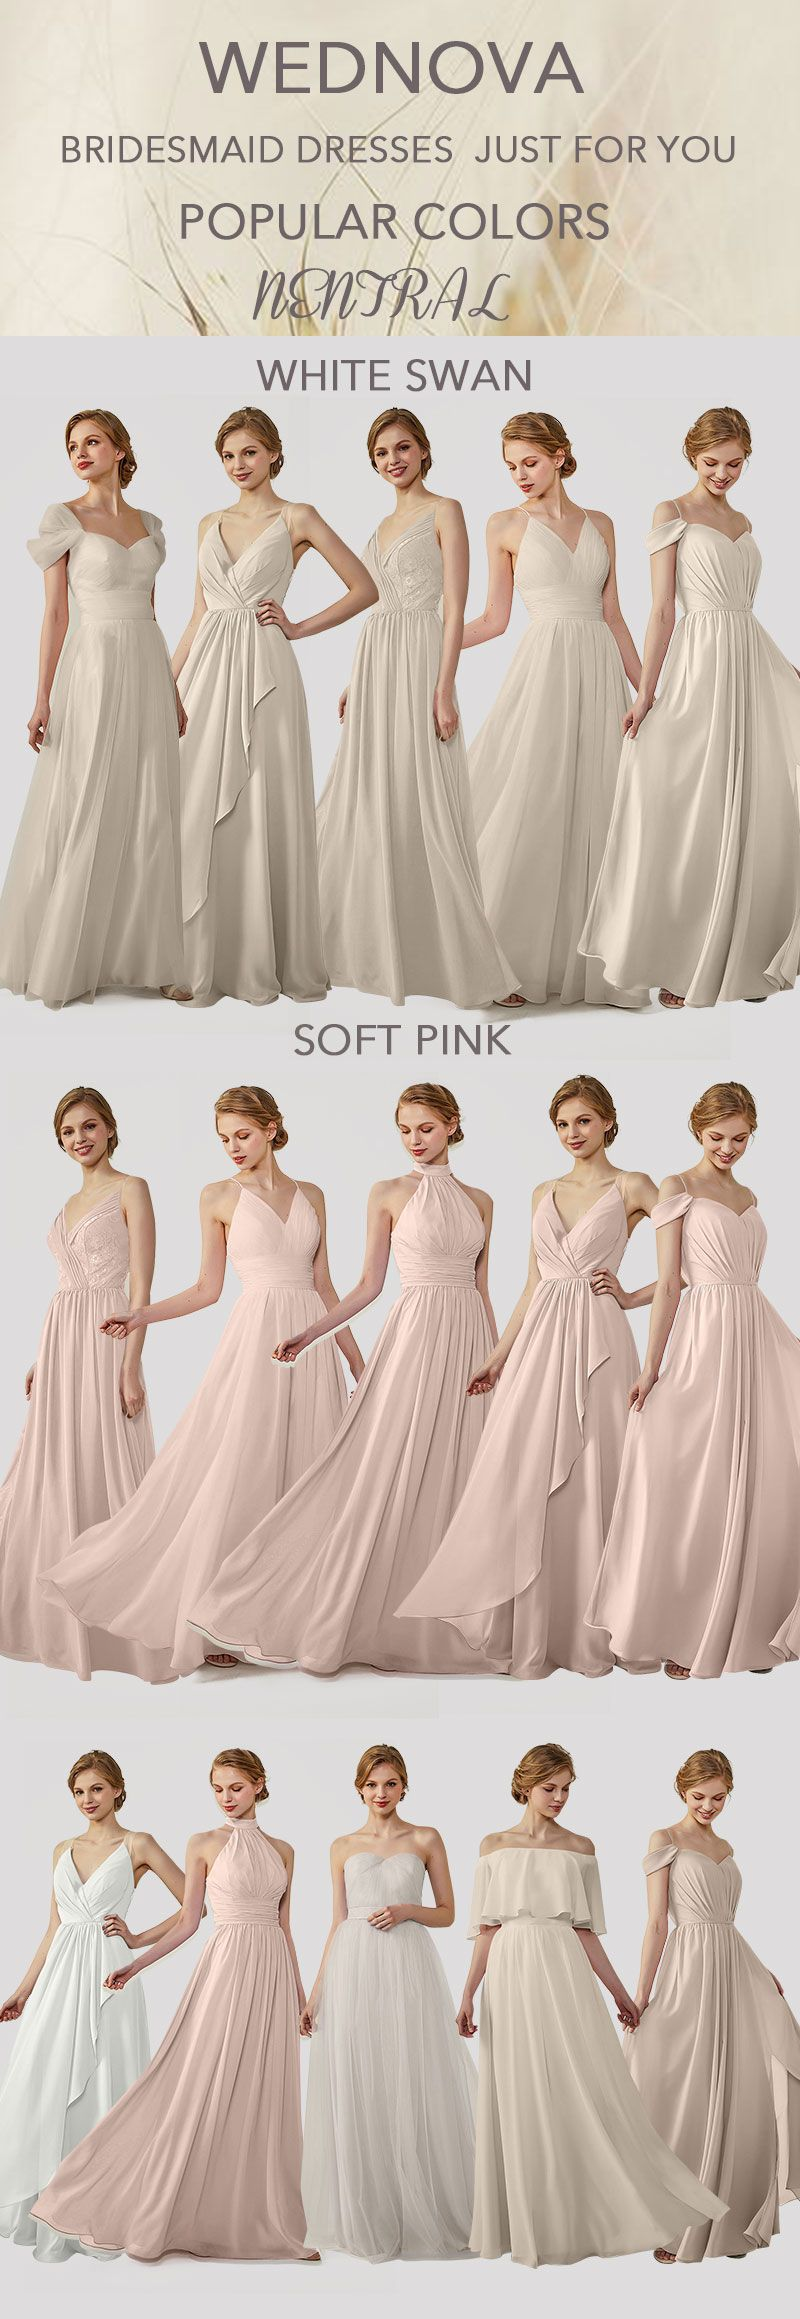 Top chiffon bridesmaid dresses neutral v neck dress you can wear